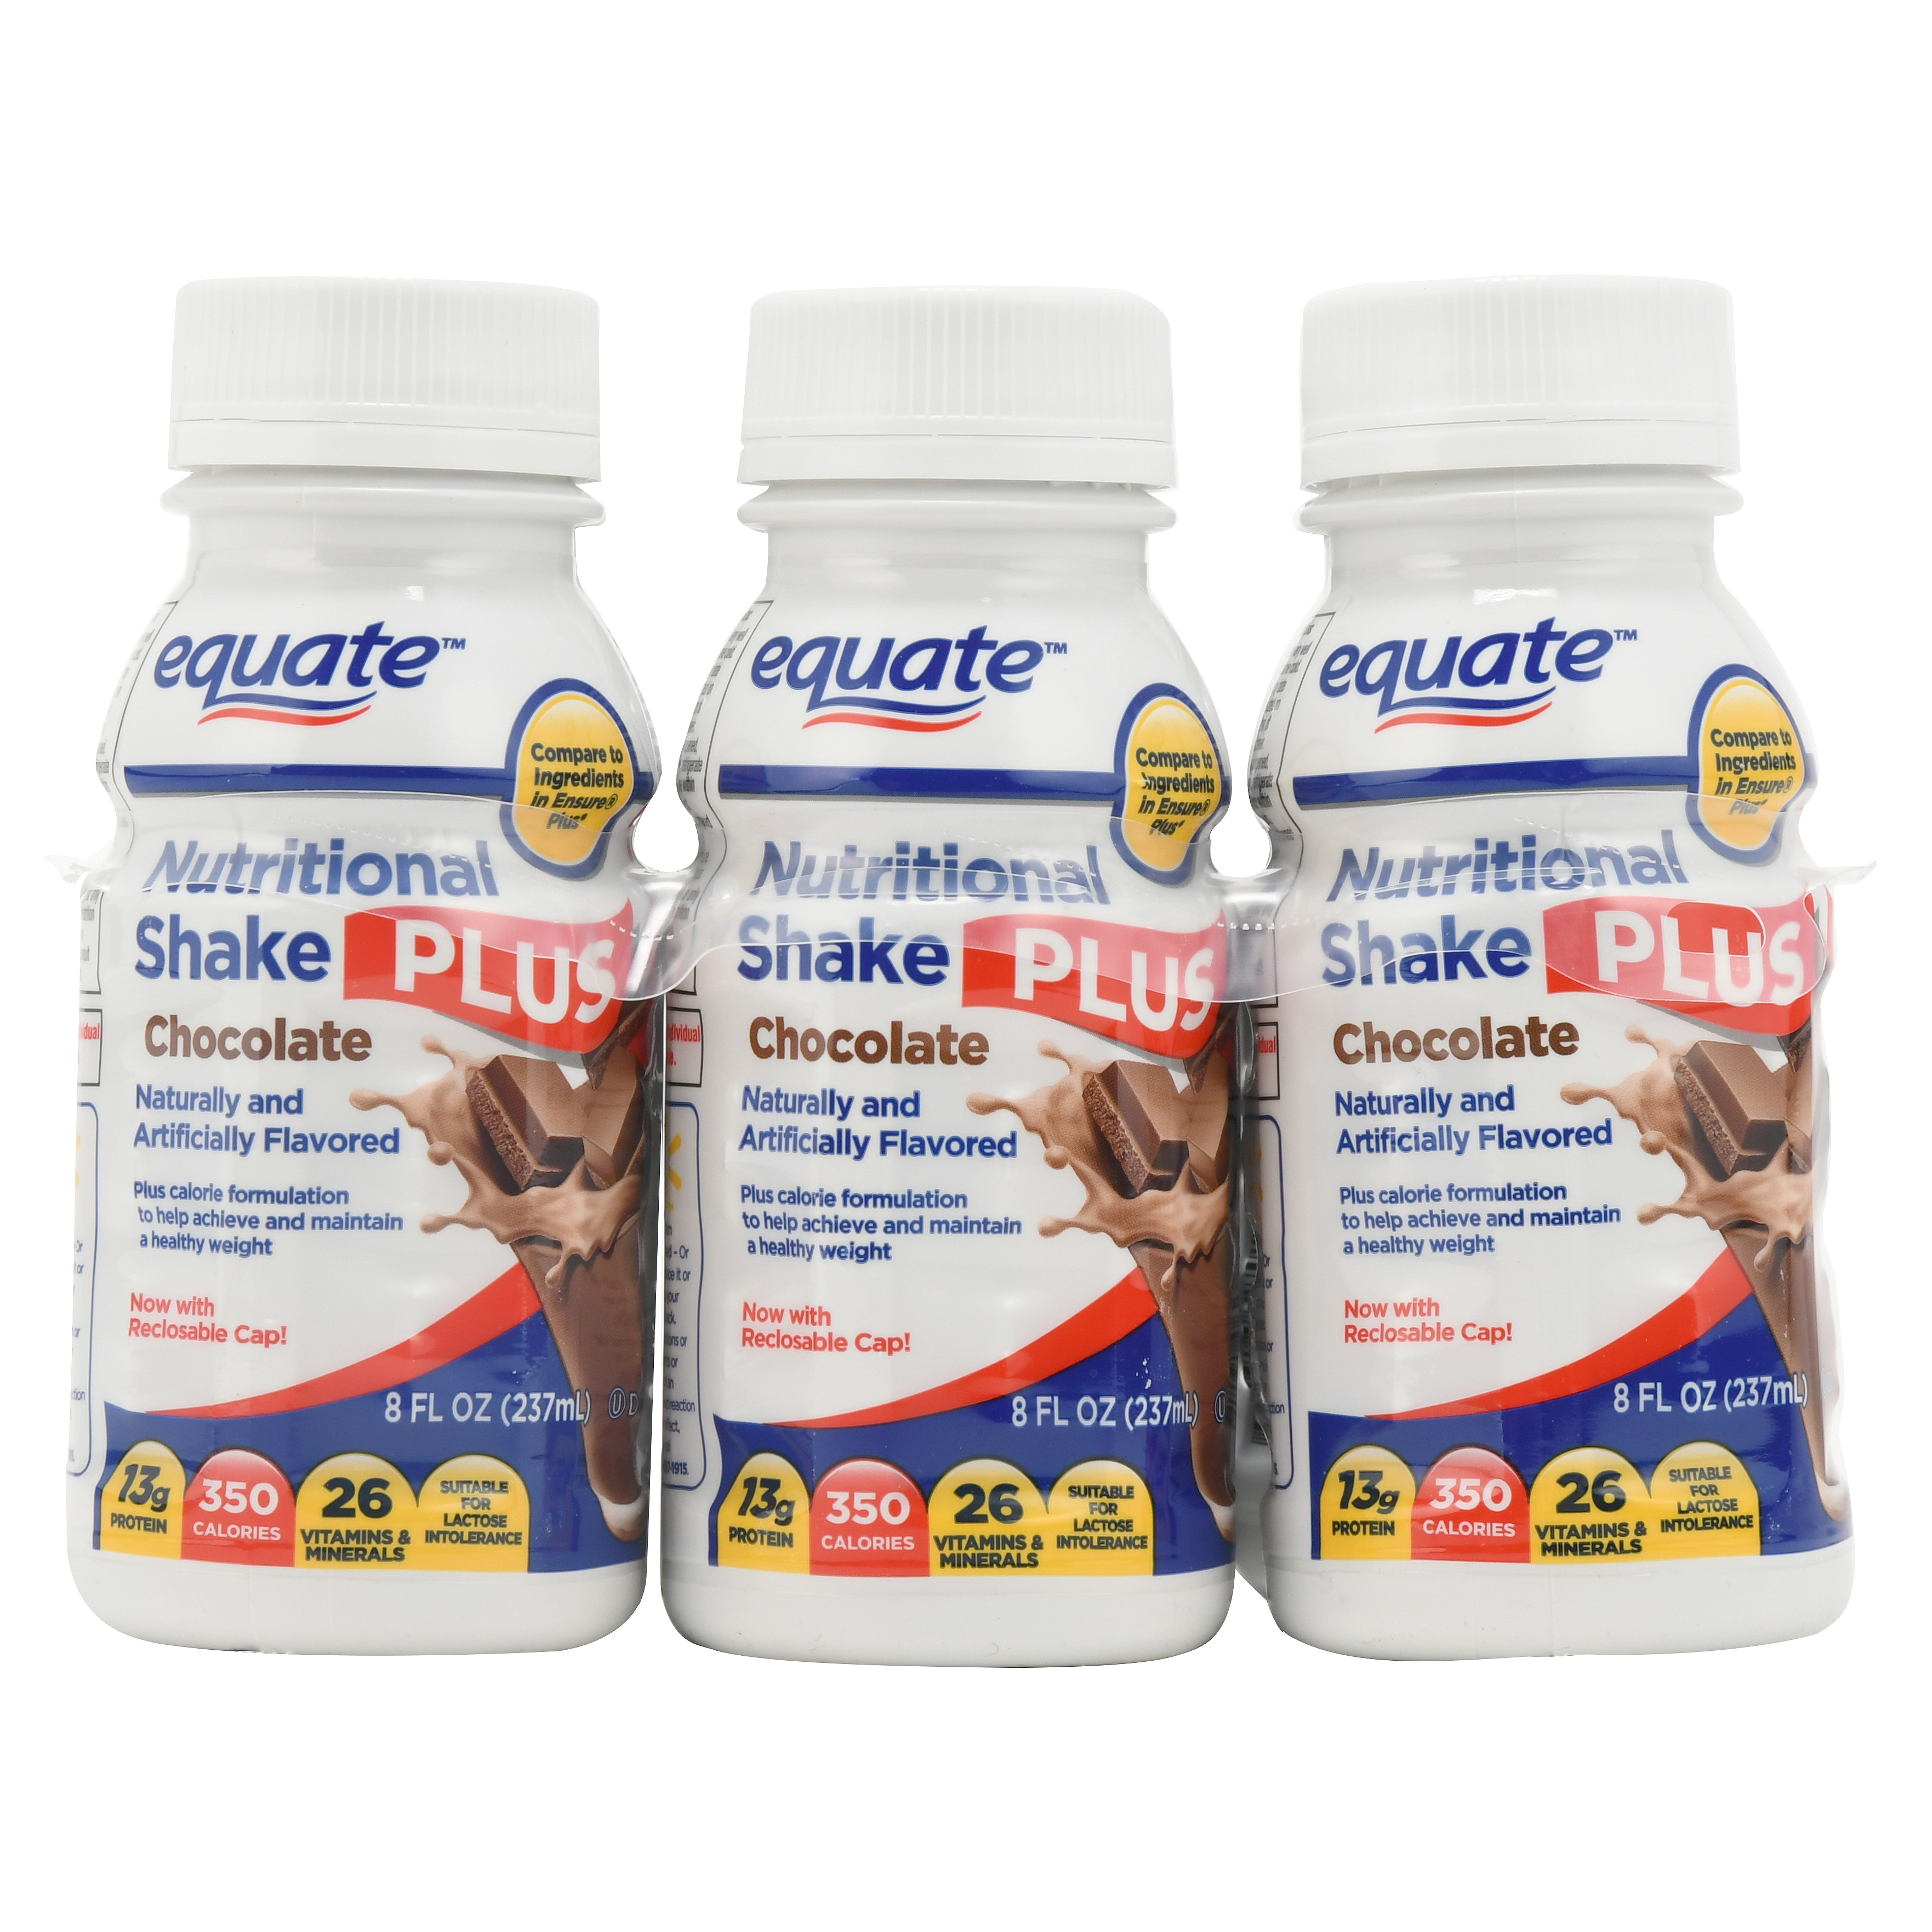 Equate Nutritional Shake Plus, Chocolate, 8 oz, 6 Ct